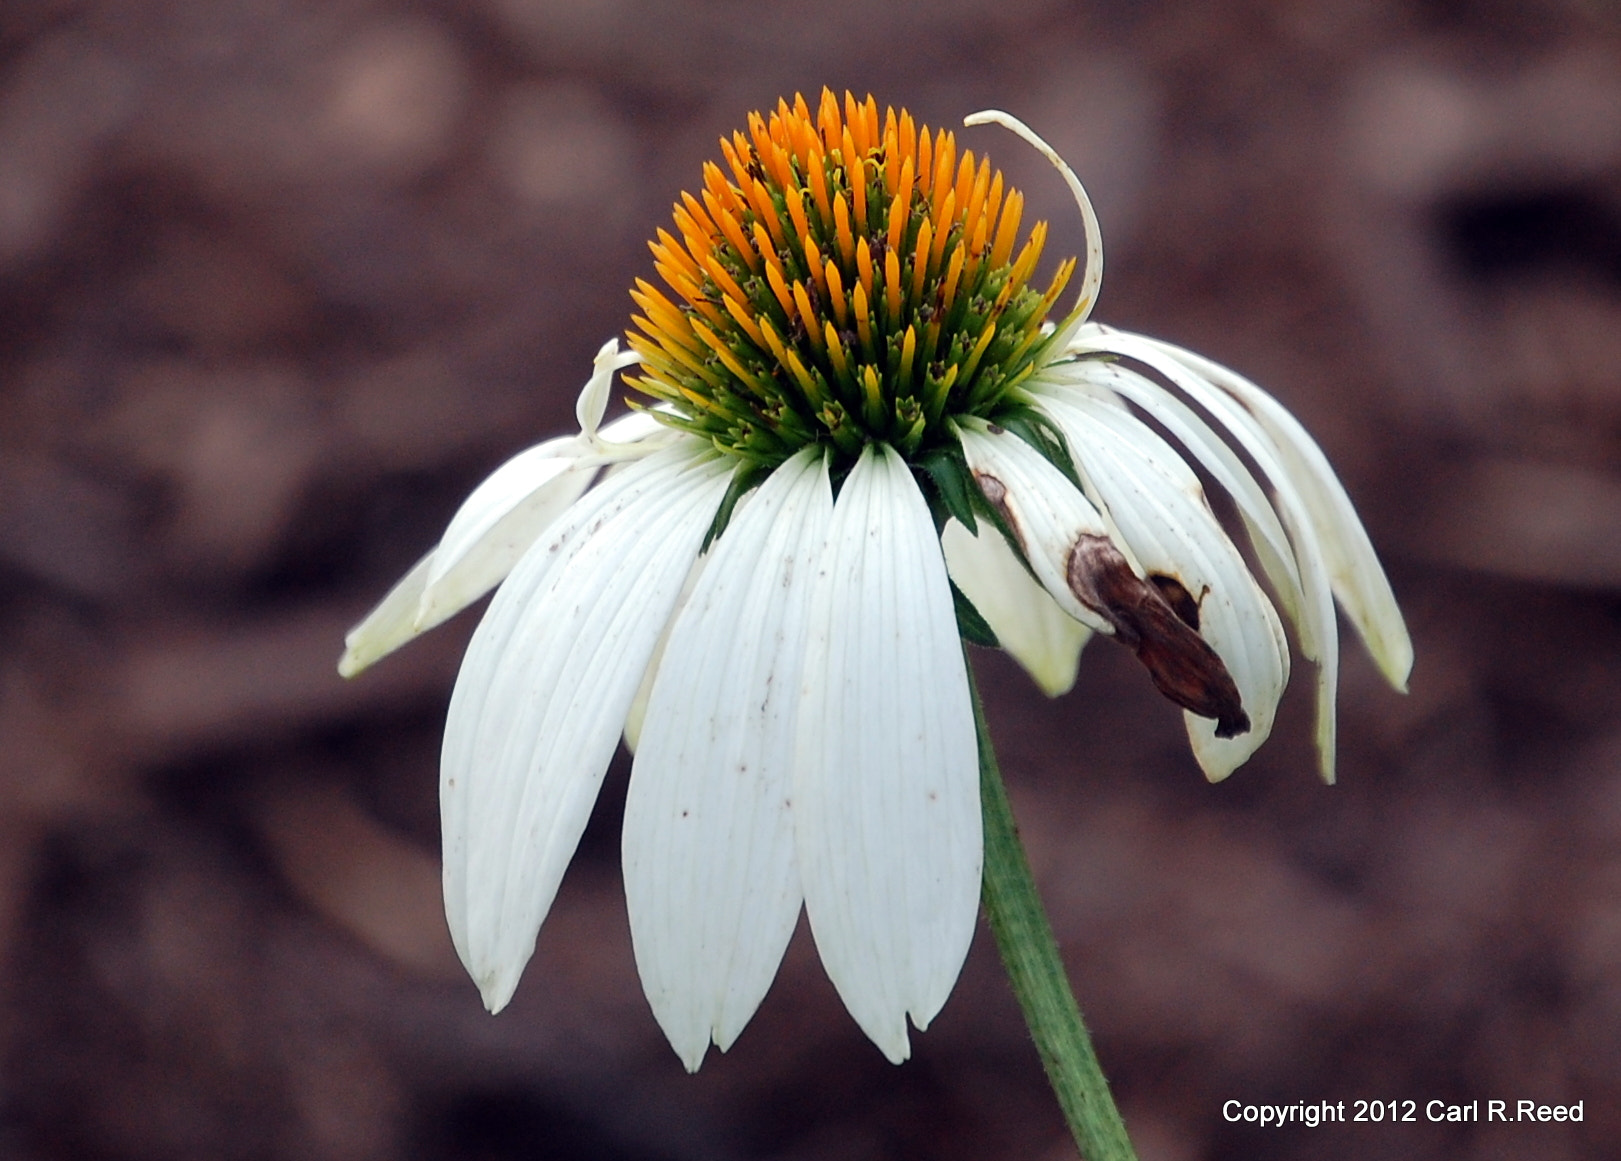 Photograph flower 1662 by Carl Reed on 500px